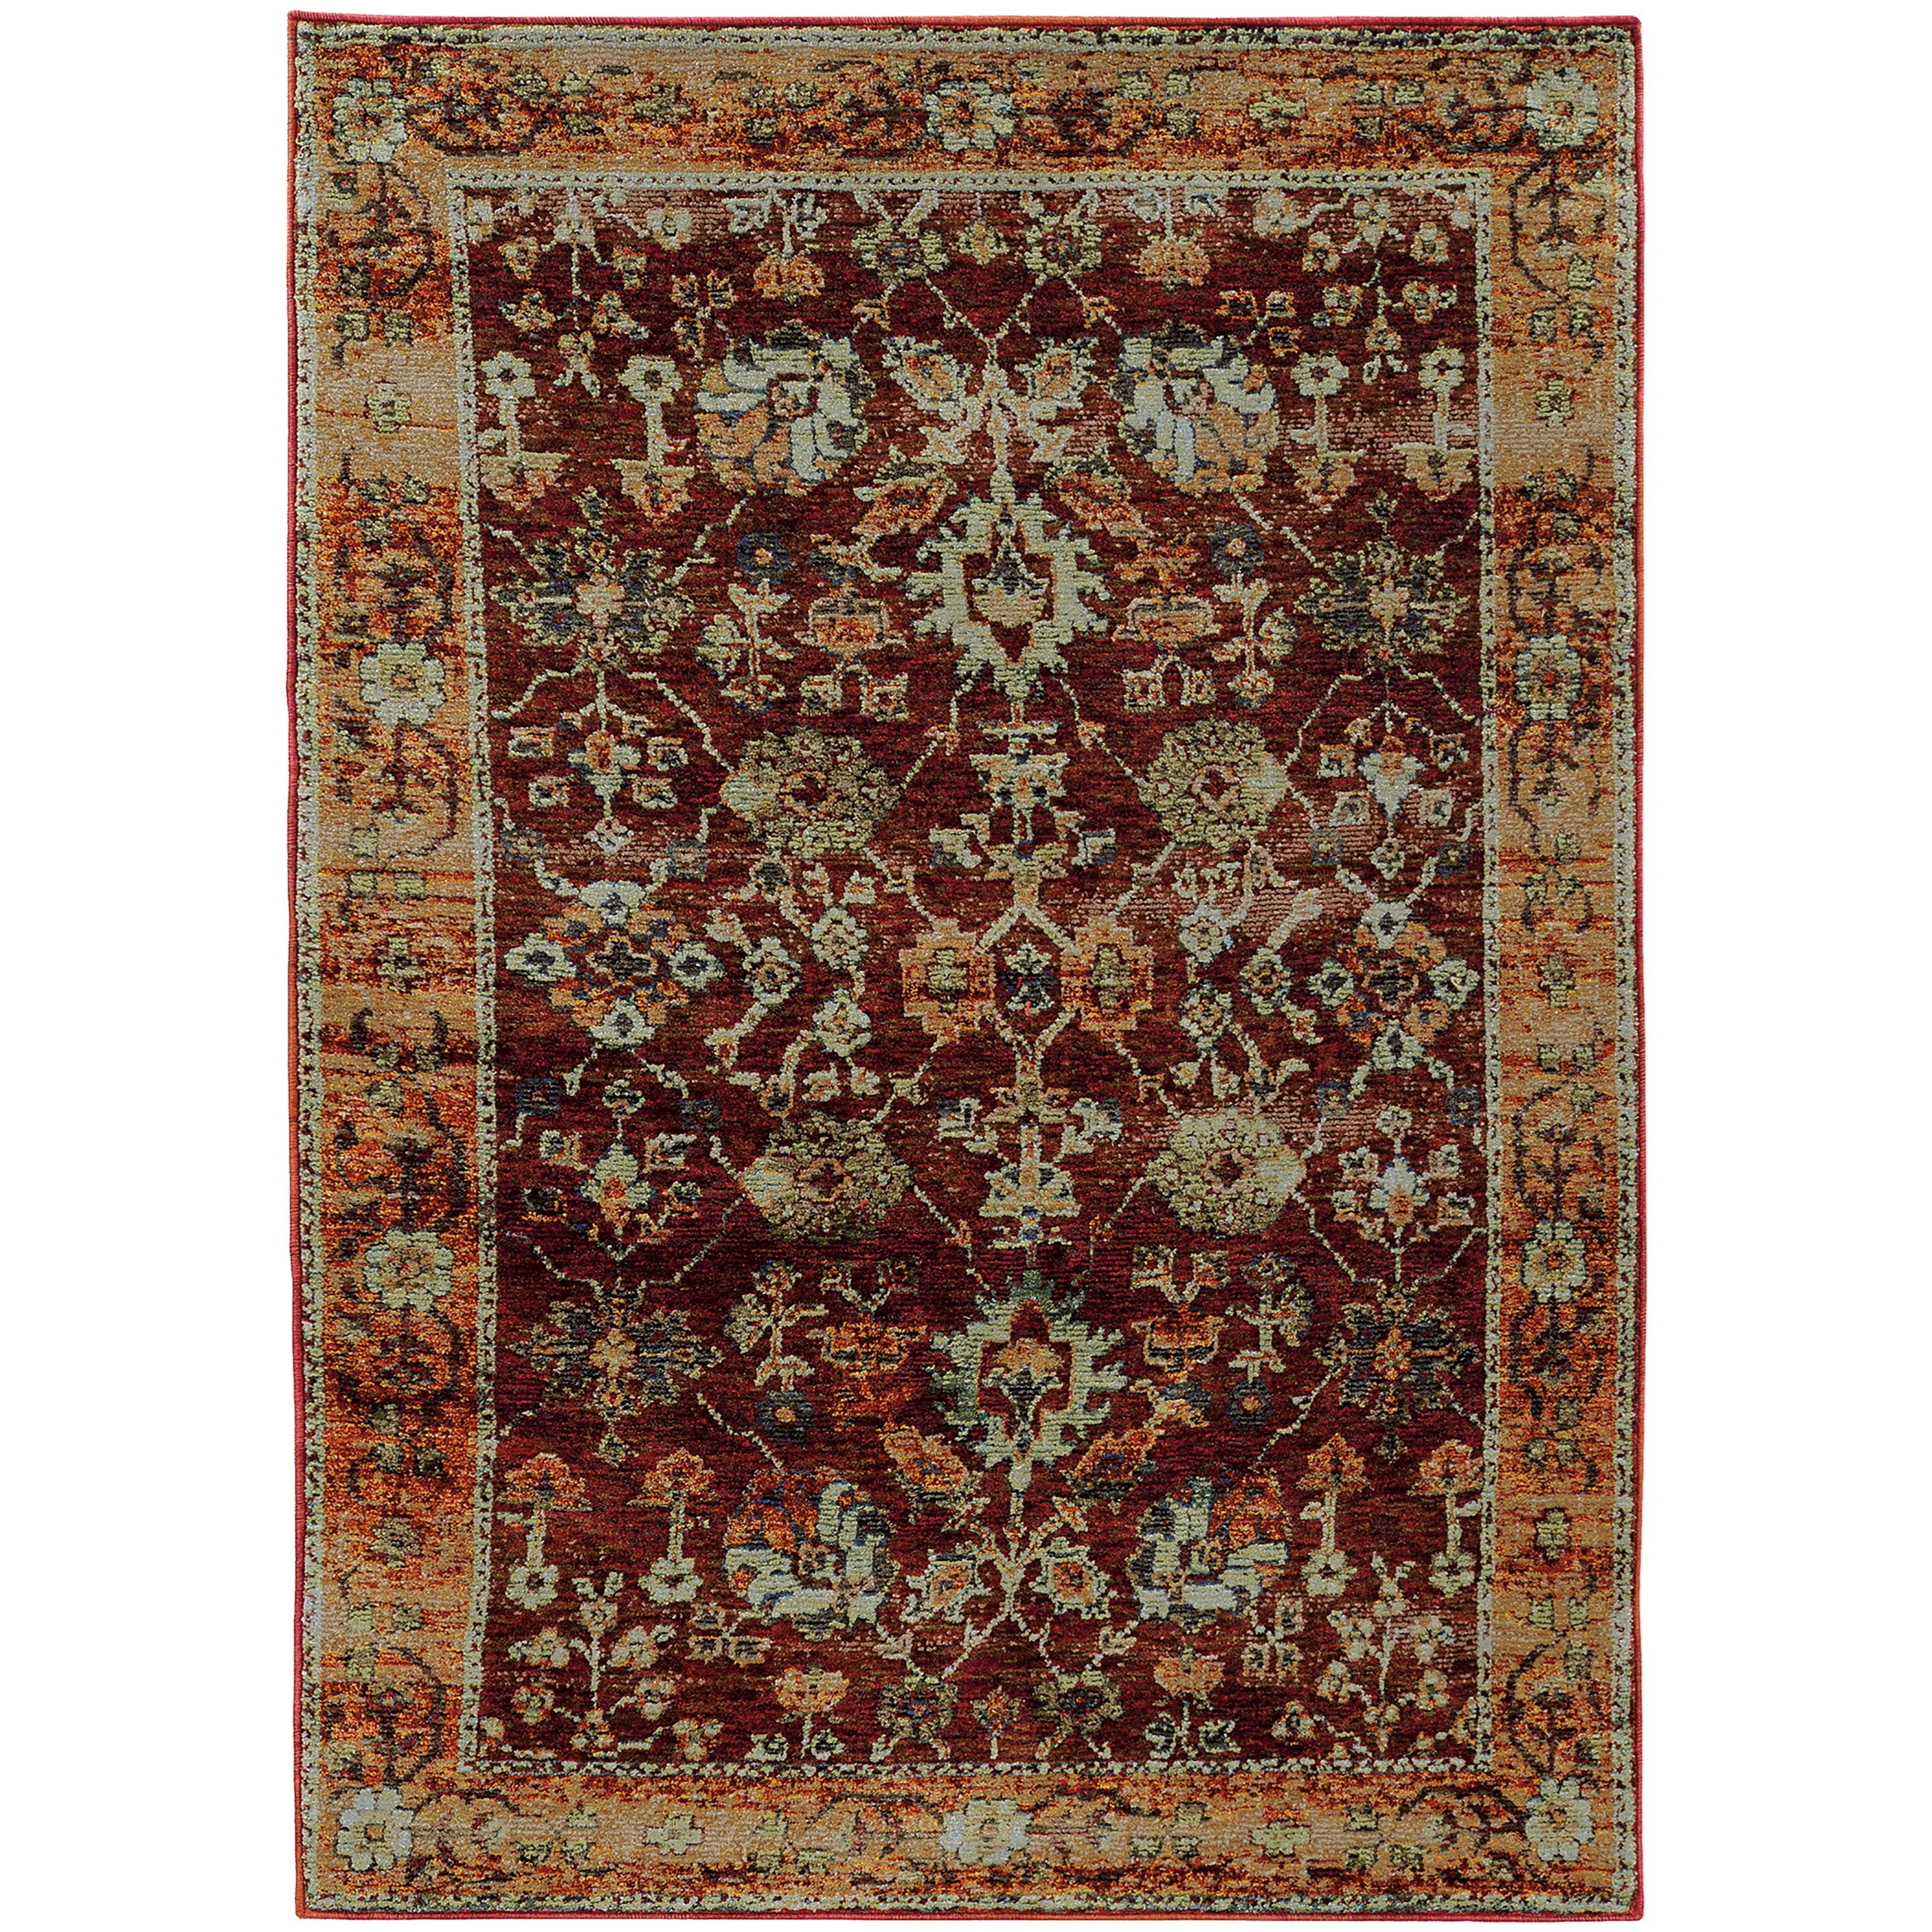 """Andorra 6' 7"""" X  9' 6"""" Casual Red/ Gold Rectangle Ru by Oriental Weavers at Steger's Furniture"""